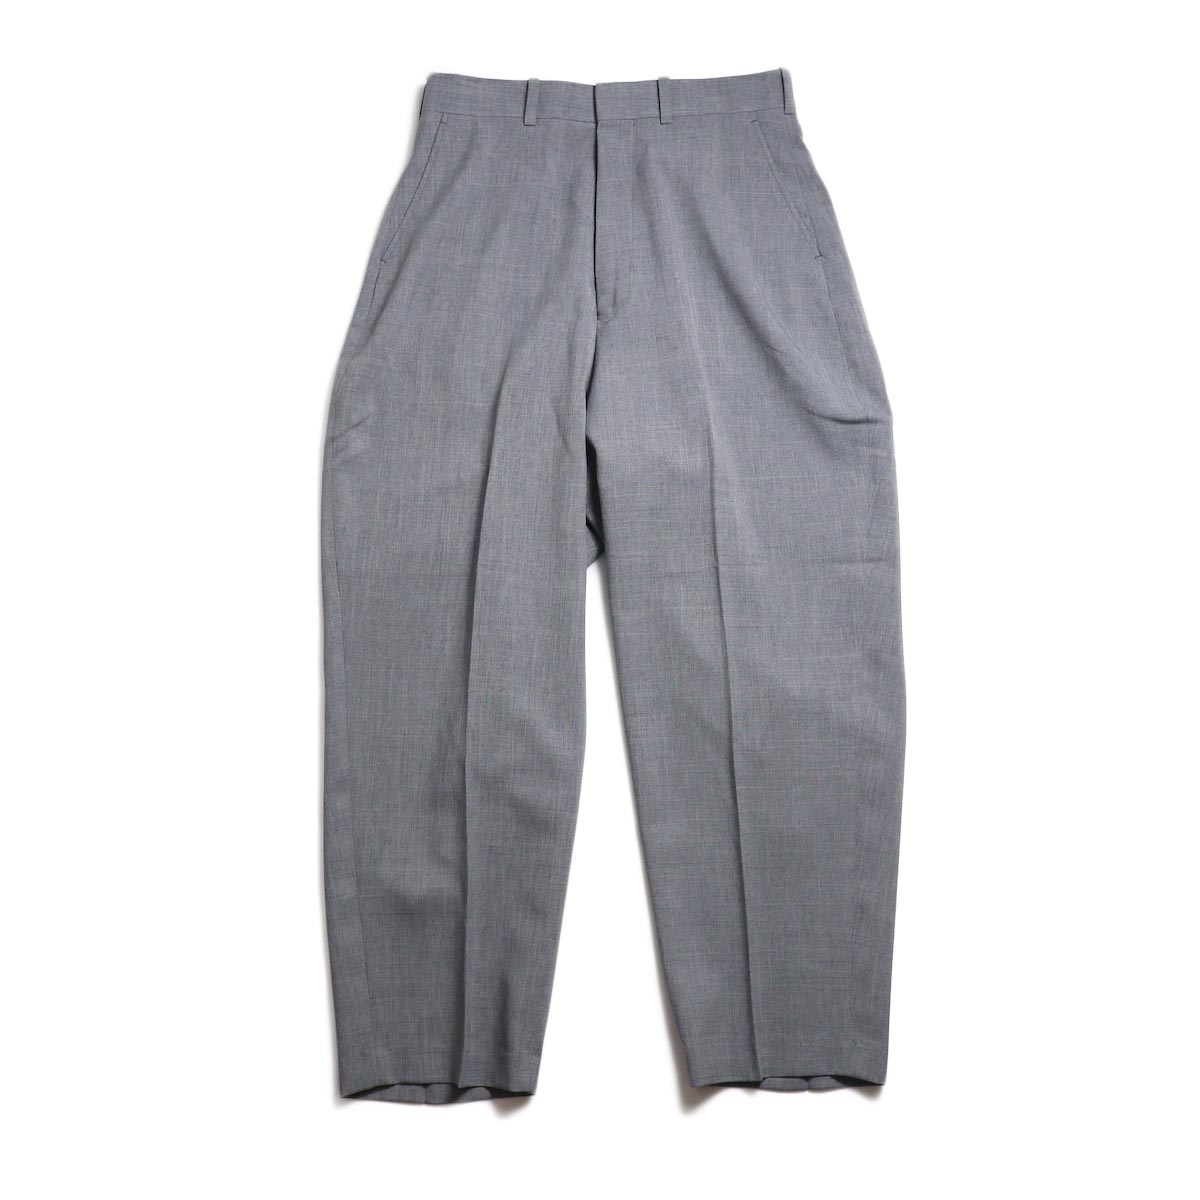 N.HOOLYWOOD / 191-PT05-034-pieces Wide Slacks (Gray)